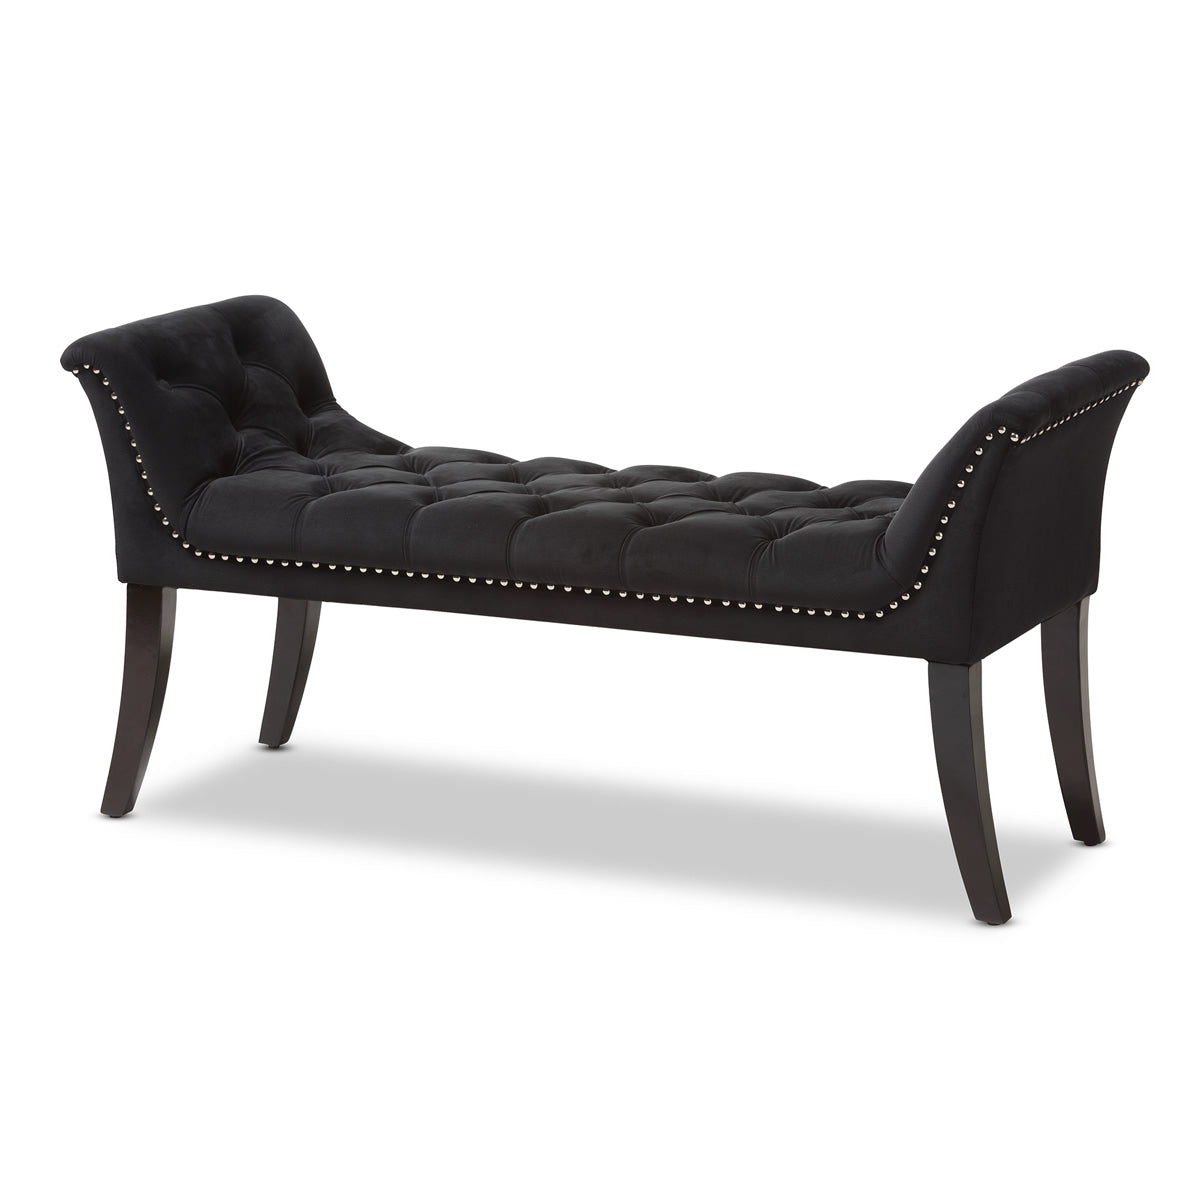 Baxton Studio Chandelle Luxe and Contemporary Black Velvet Upholstered Bench Baxton Studio-0-Minimal And Modern - 1